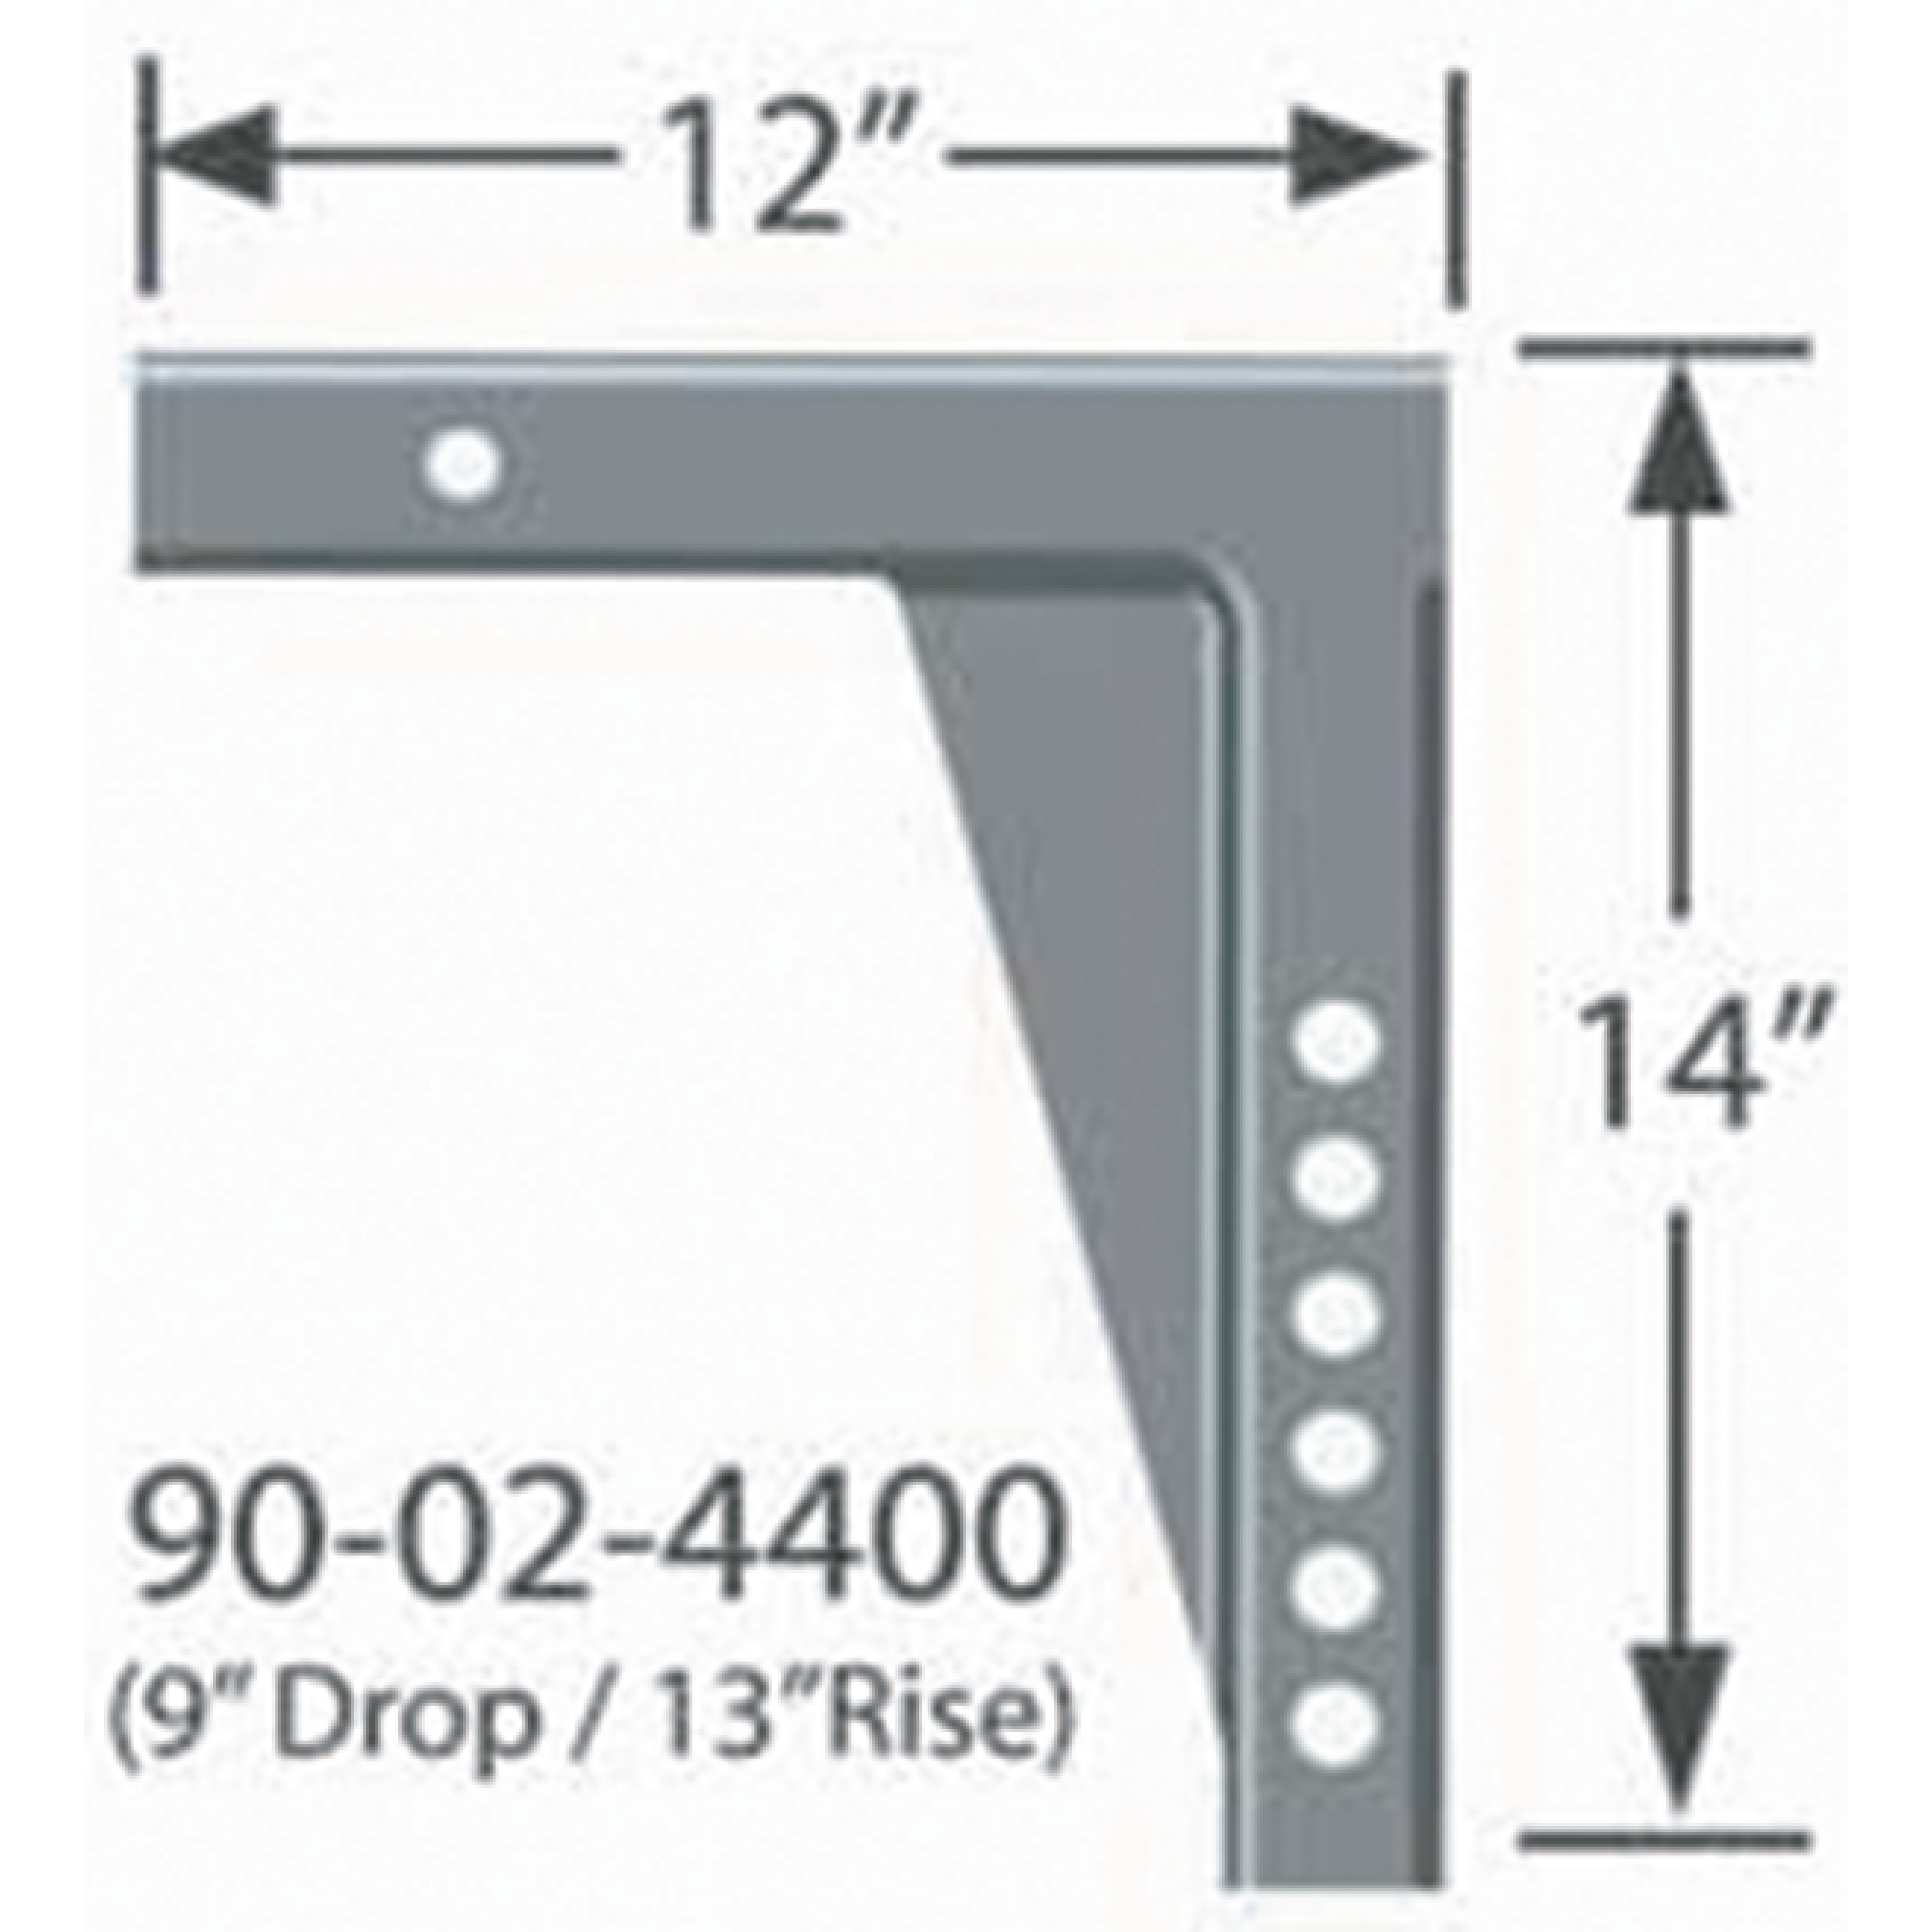 "Progress Mfg 90-02-4400 Equal-i-zer 2"" Adjustable RV Shank - 9"" Drop, 13"" Rise & 12"" Length (Xxl12)"